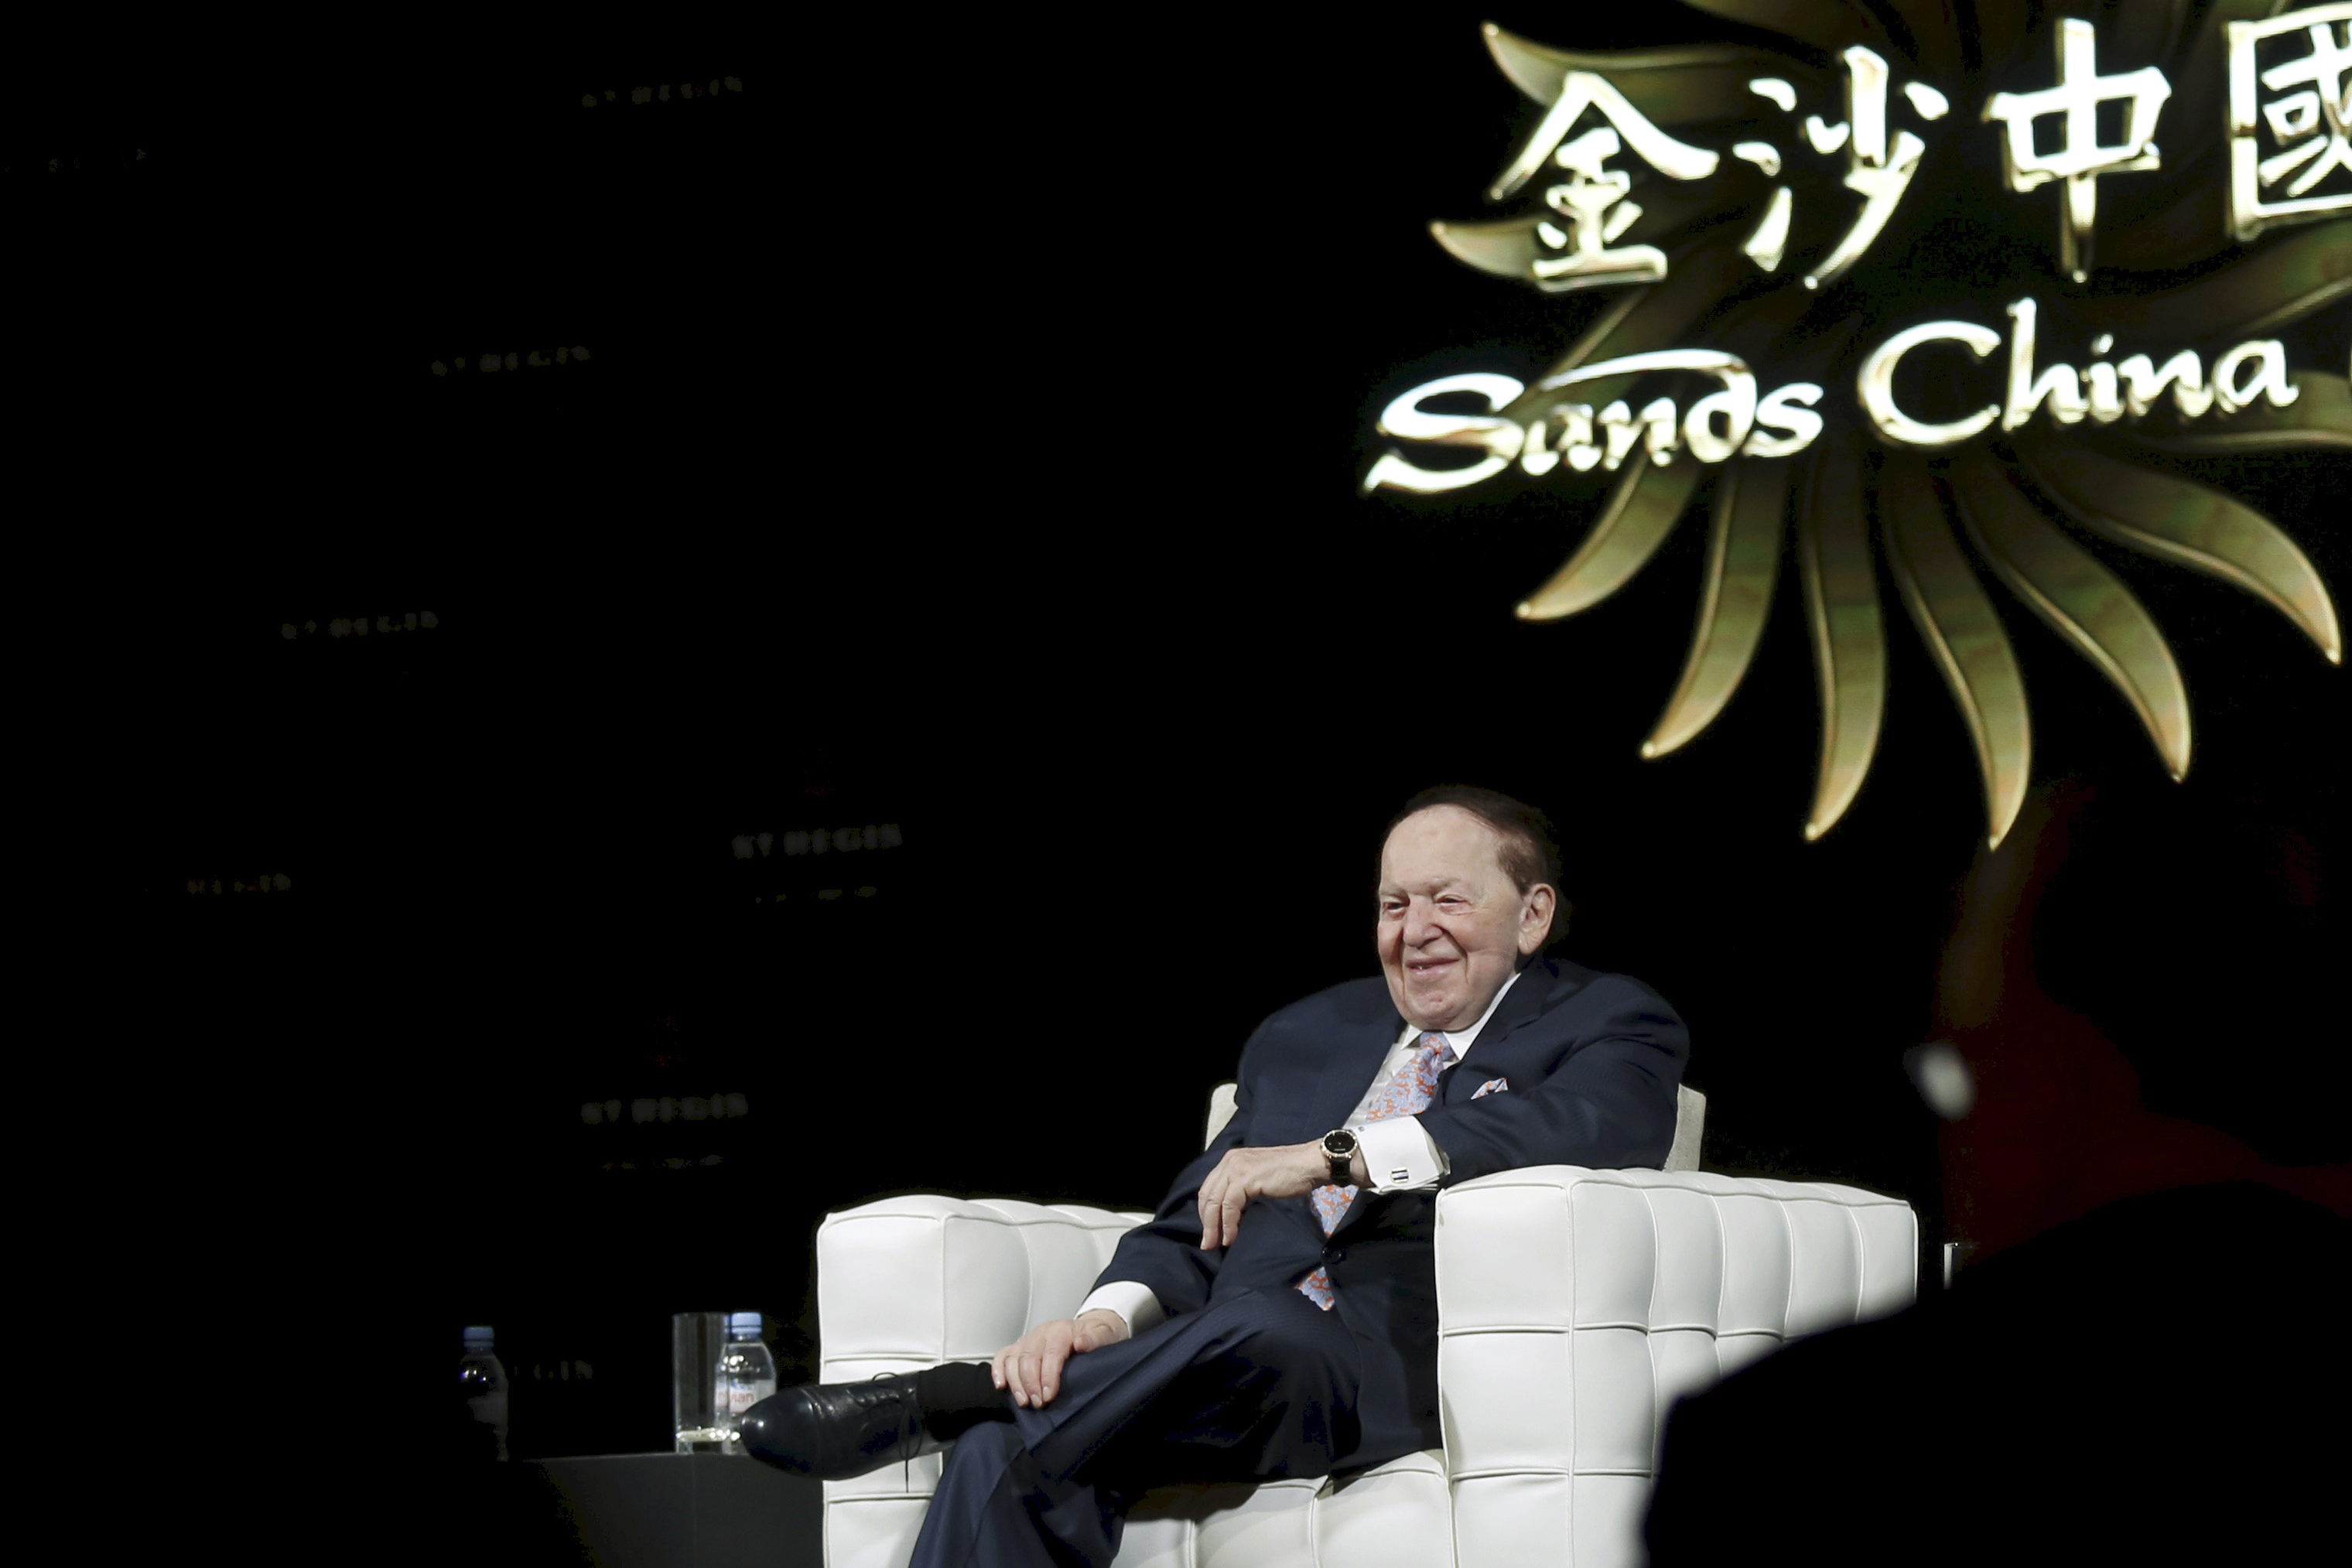 Gambling giant Las Vegas Sands Corp's Chief Executive Sheldon Adelson smiles during a news conference in Macau, China December 18, 2015.